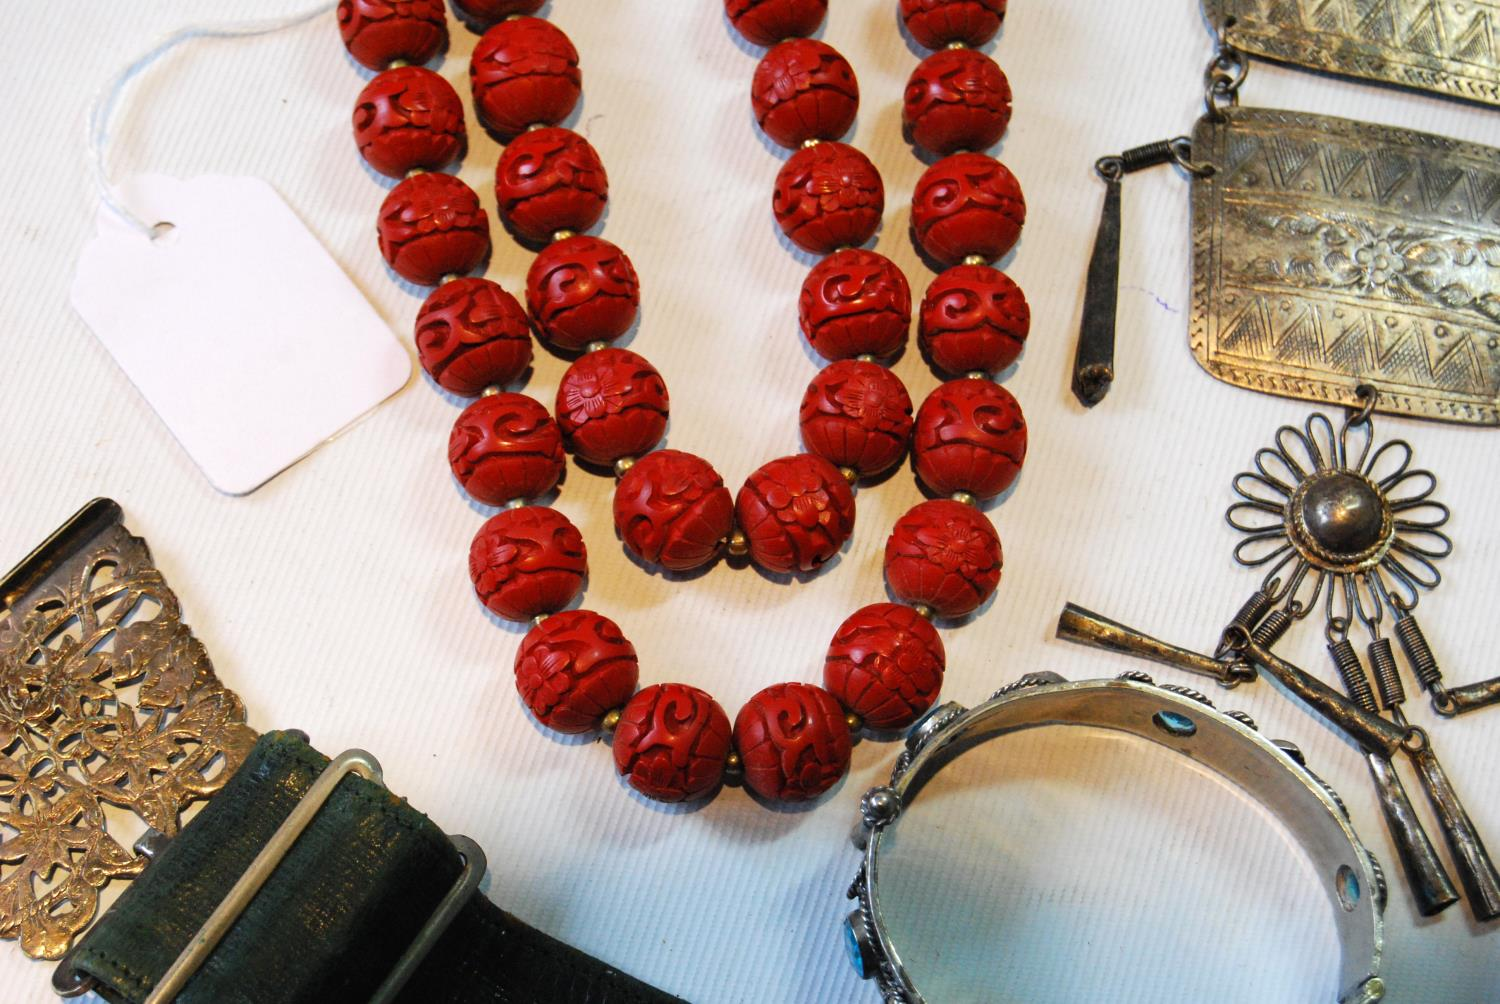 Coromandel lacquer-style necklace on Chinese silver gilt snap and a quantity of beads and costume - Image 3 of 5